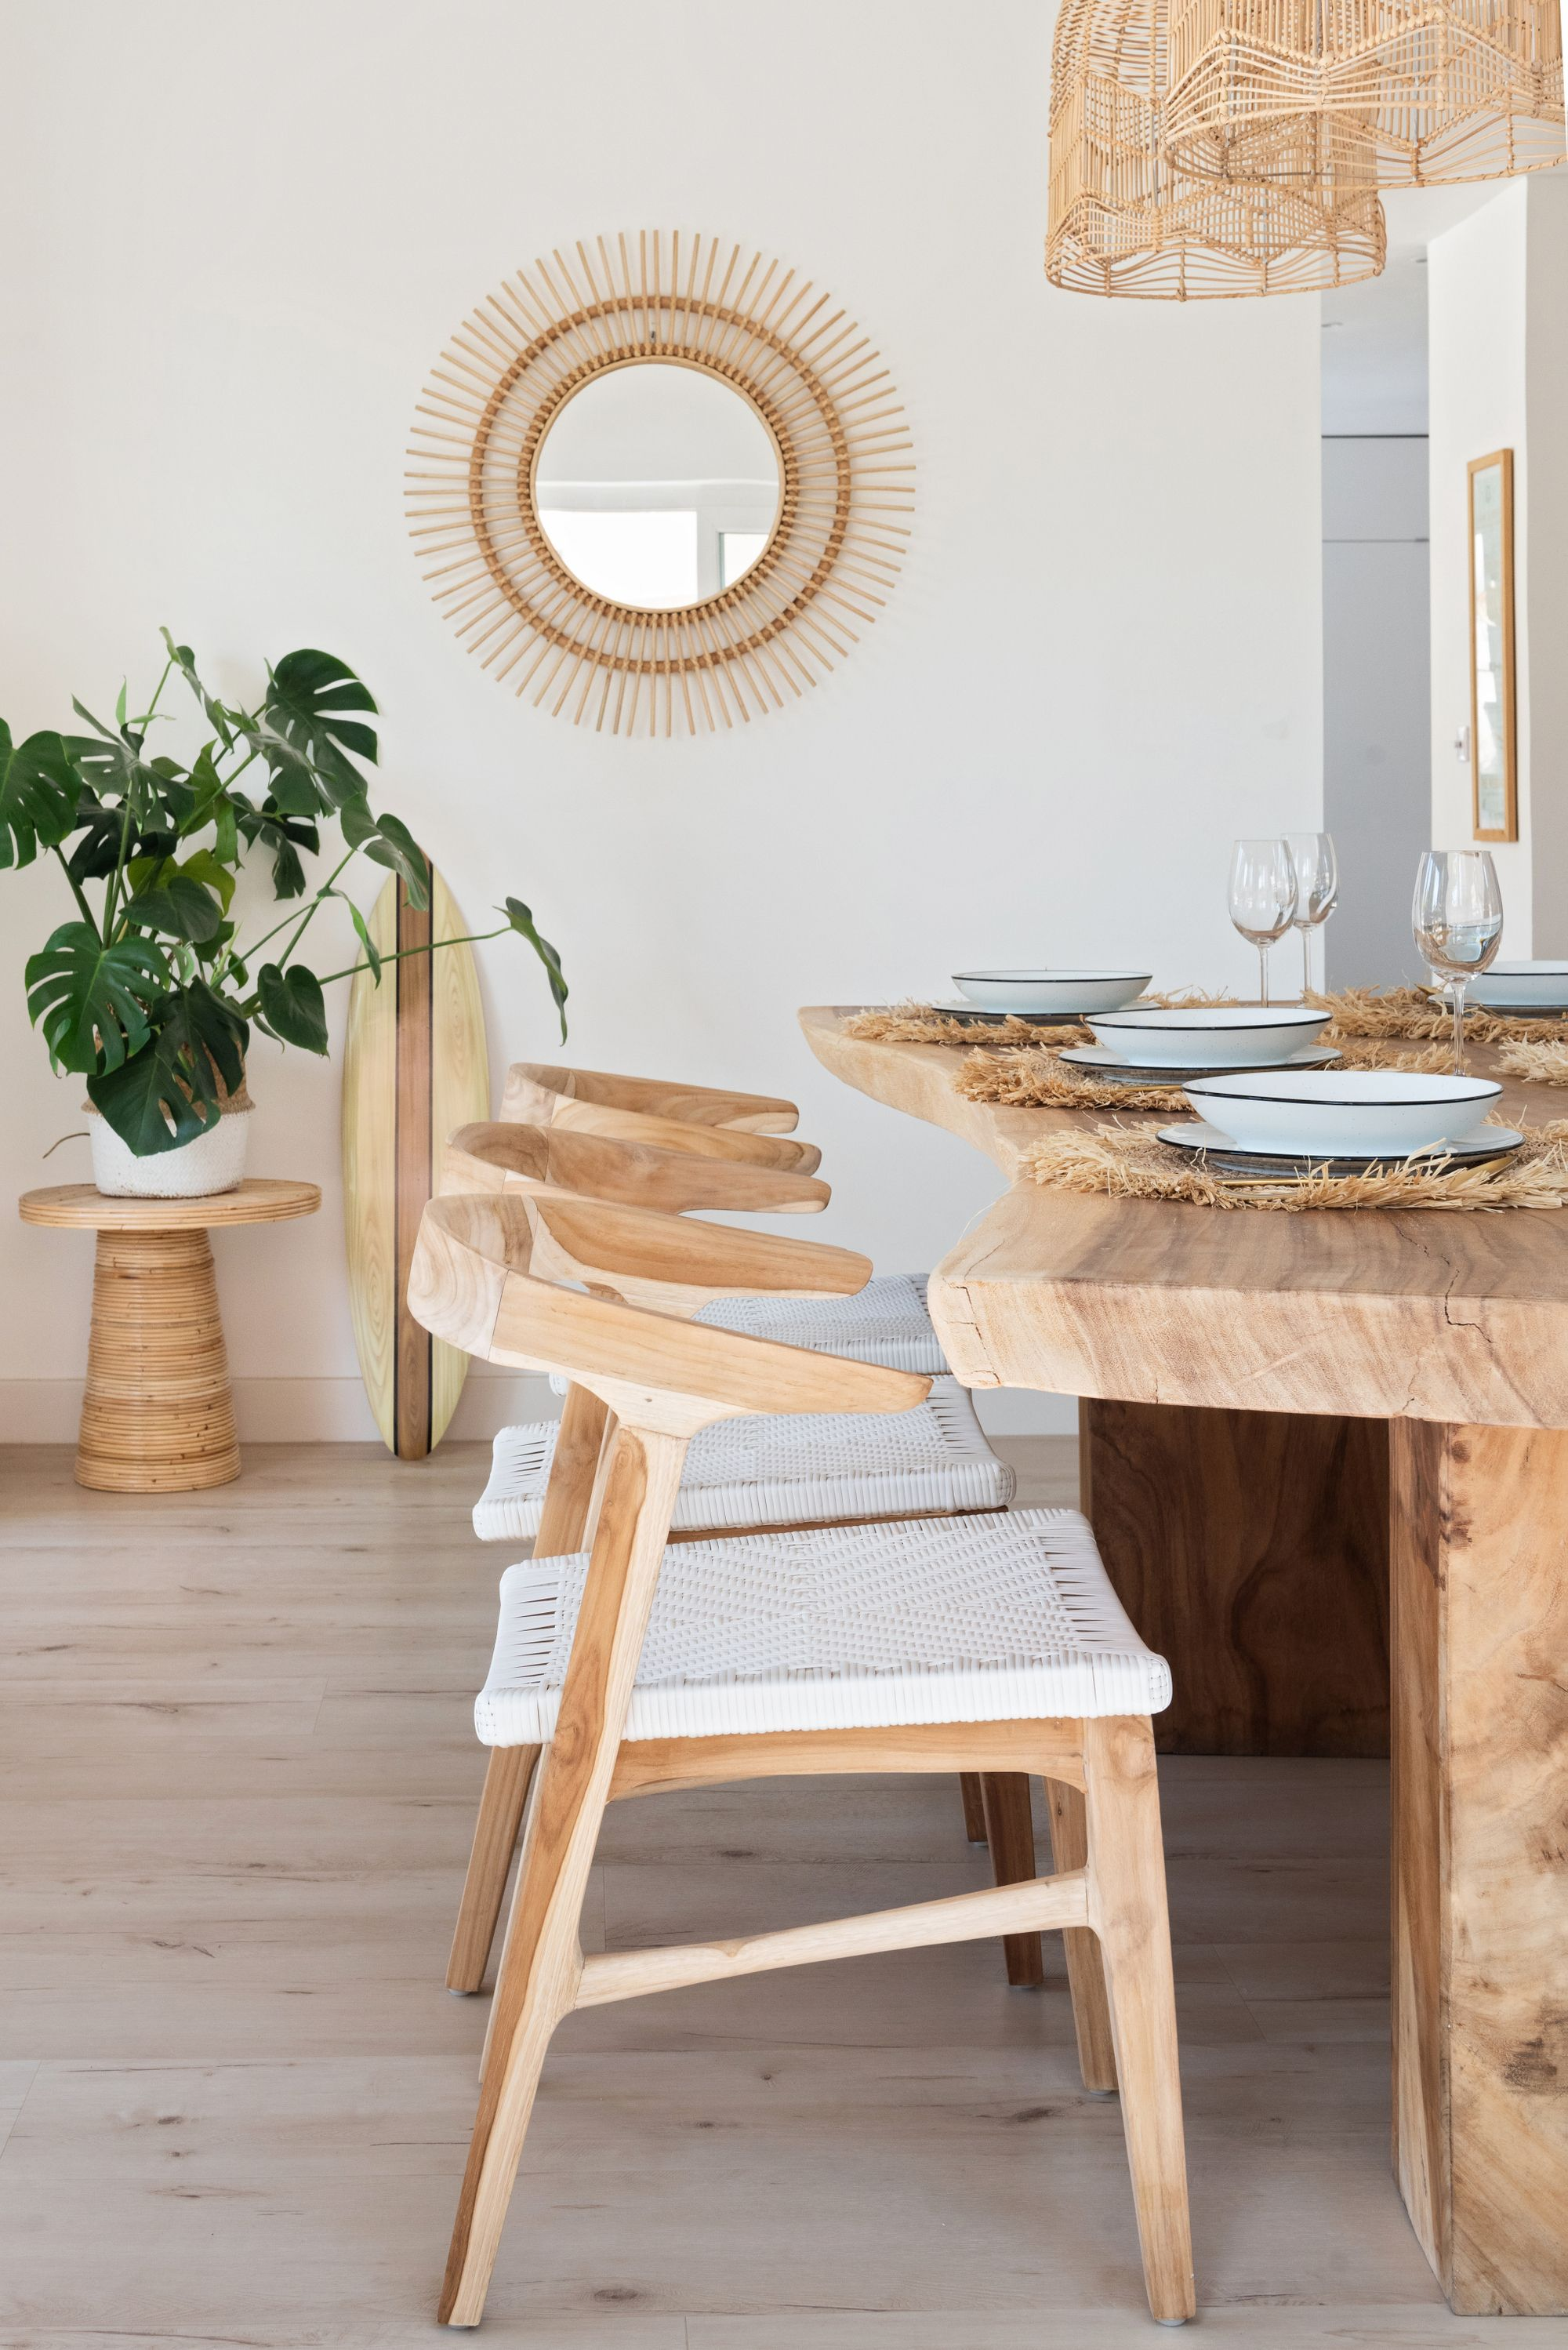 Dining Chair Inspiration Light Wood Chairs Raw Edge Dining Table